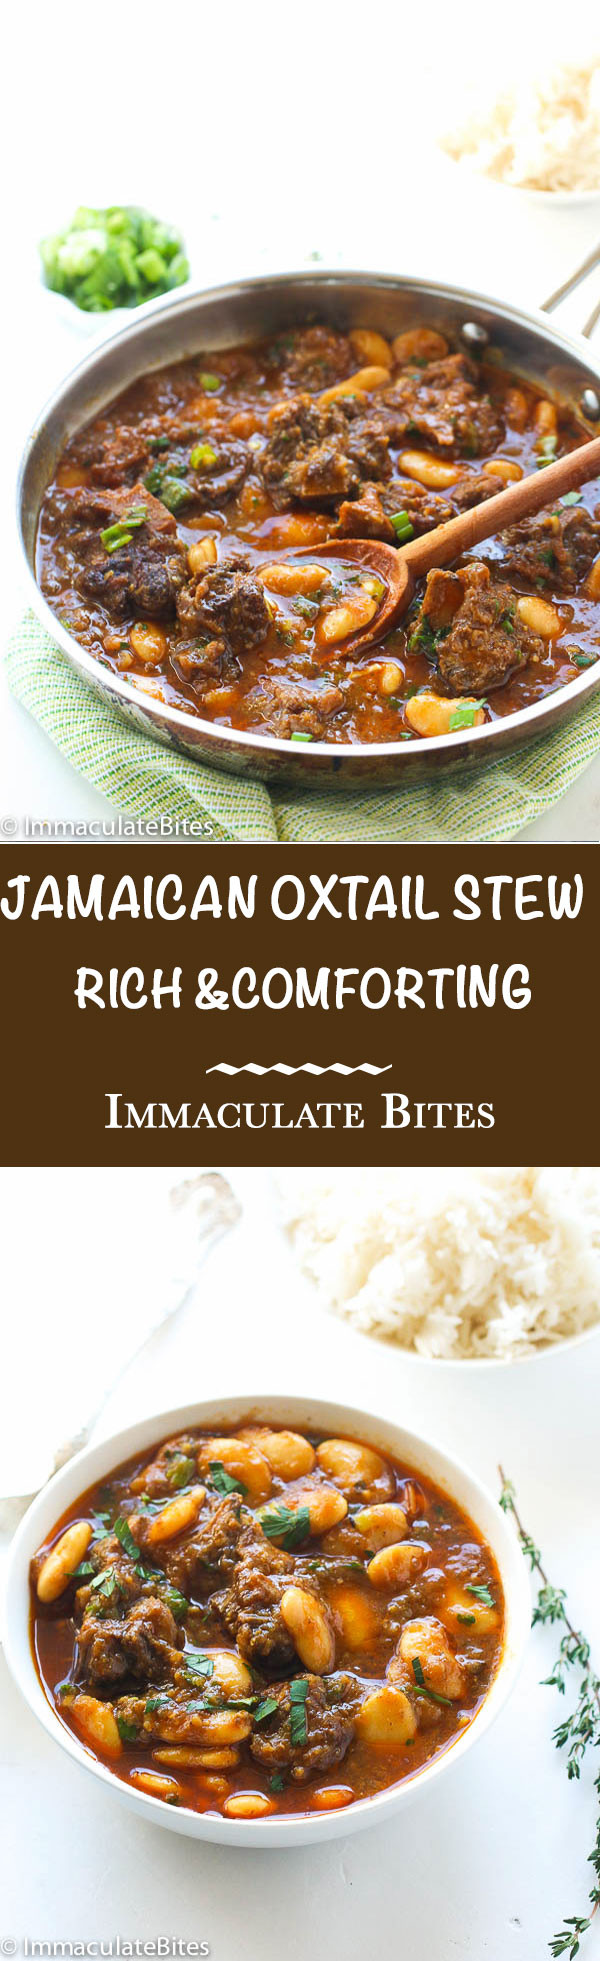 Jamaican Oxtail Stew Recipe  Jamaican Oxtail Stew Immaculate Bites